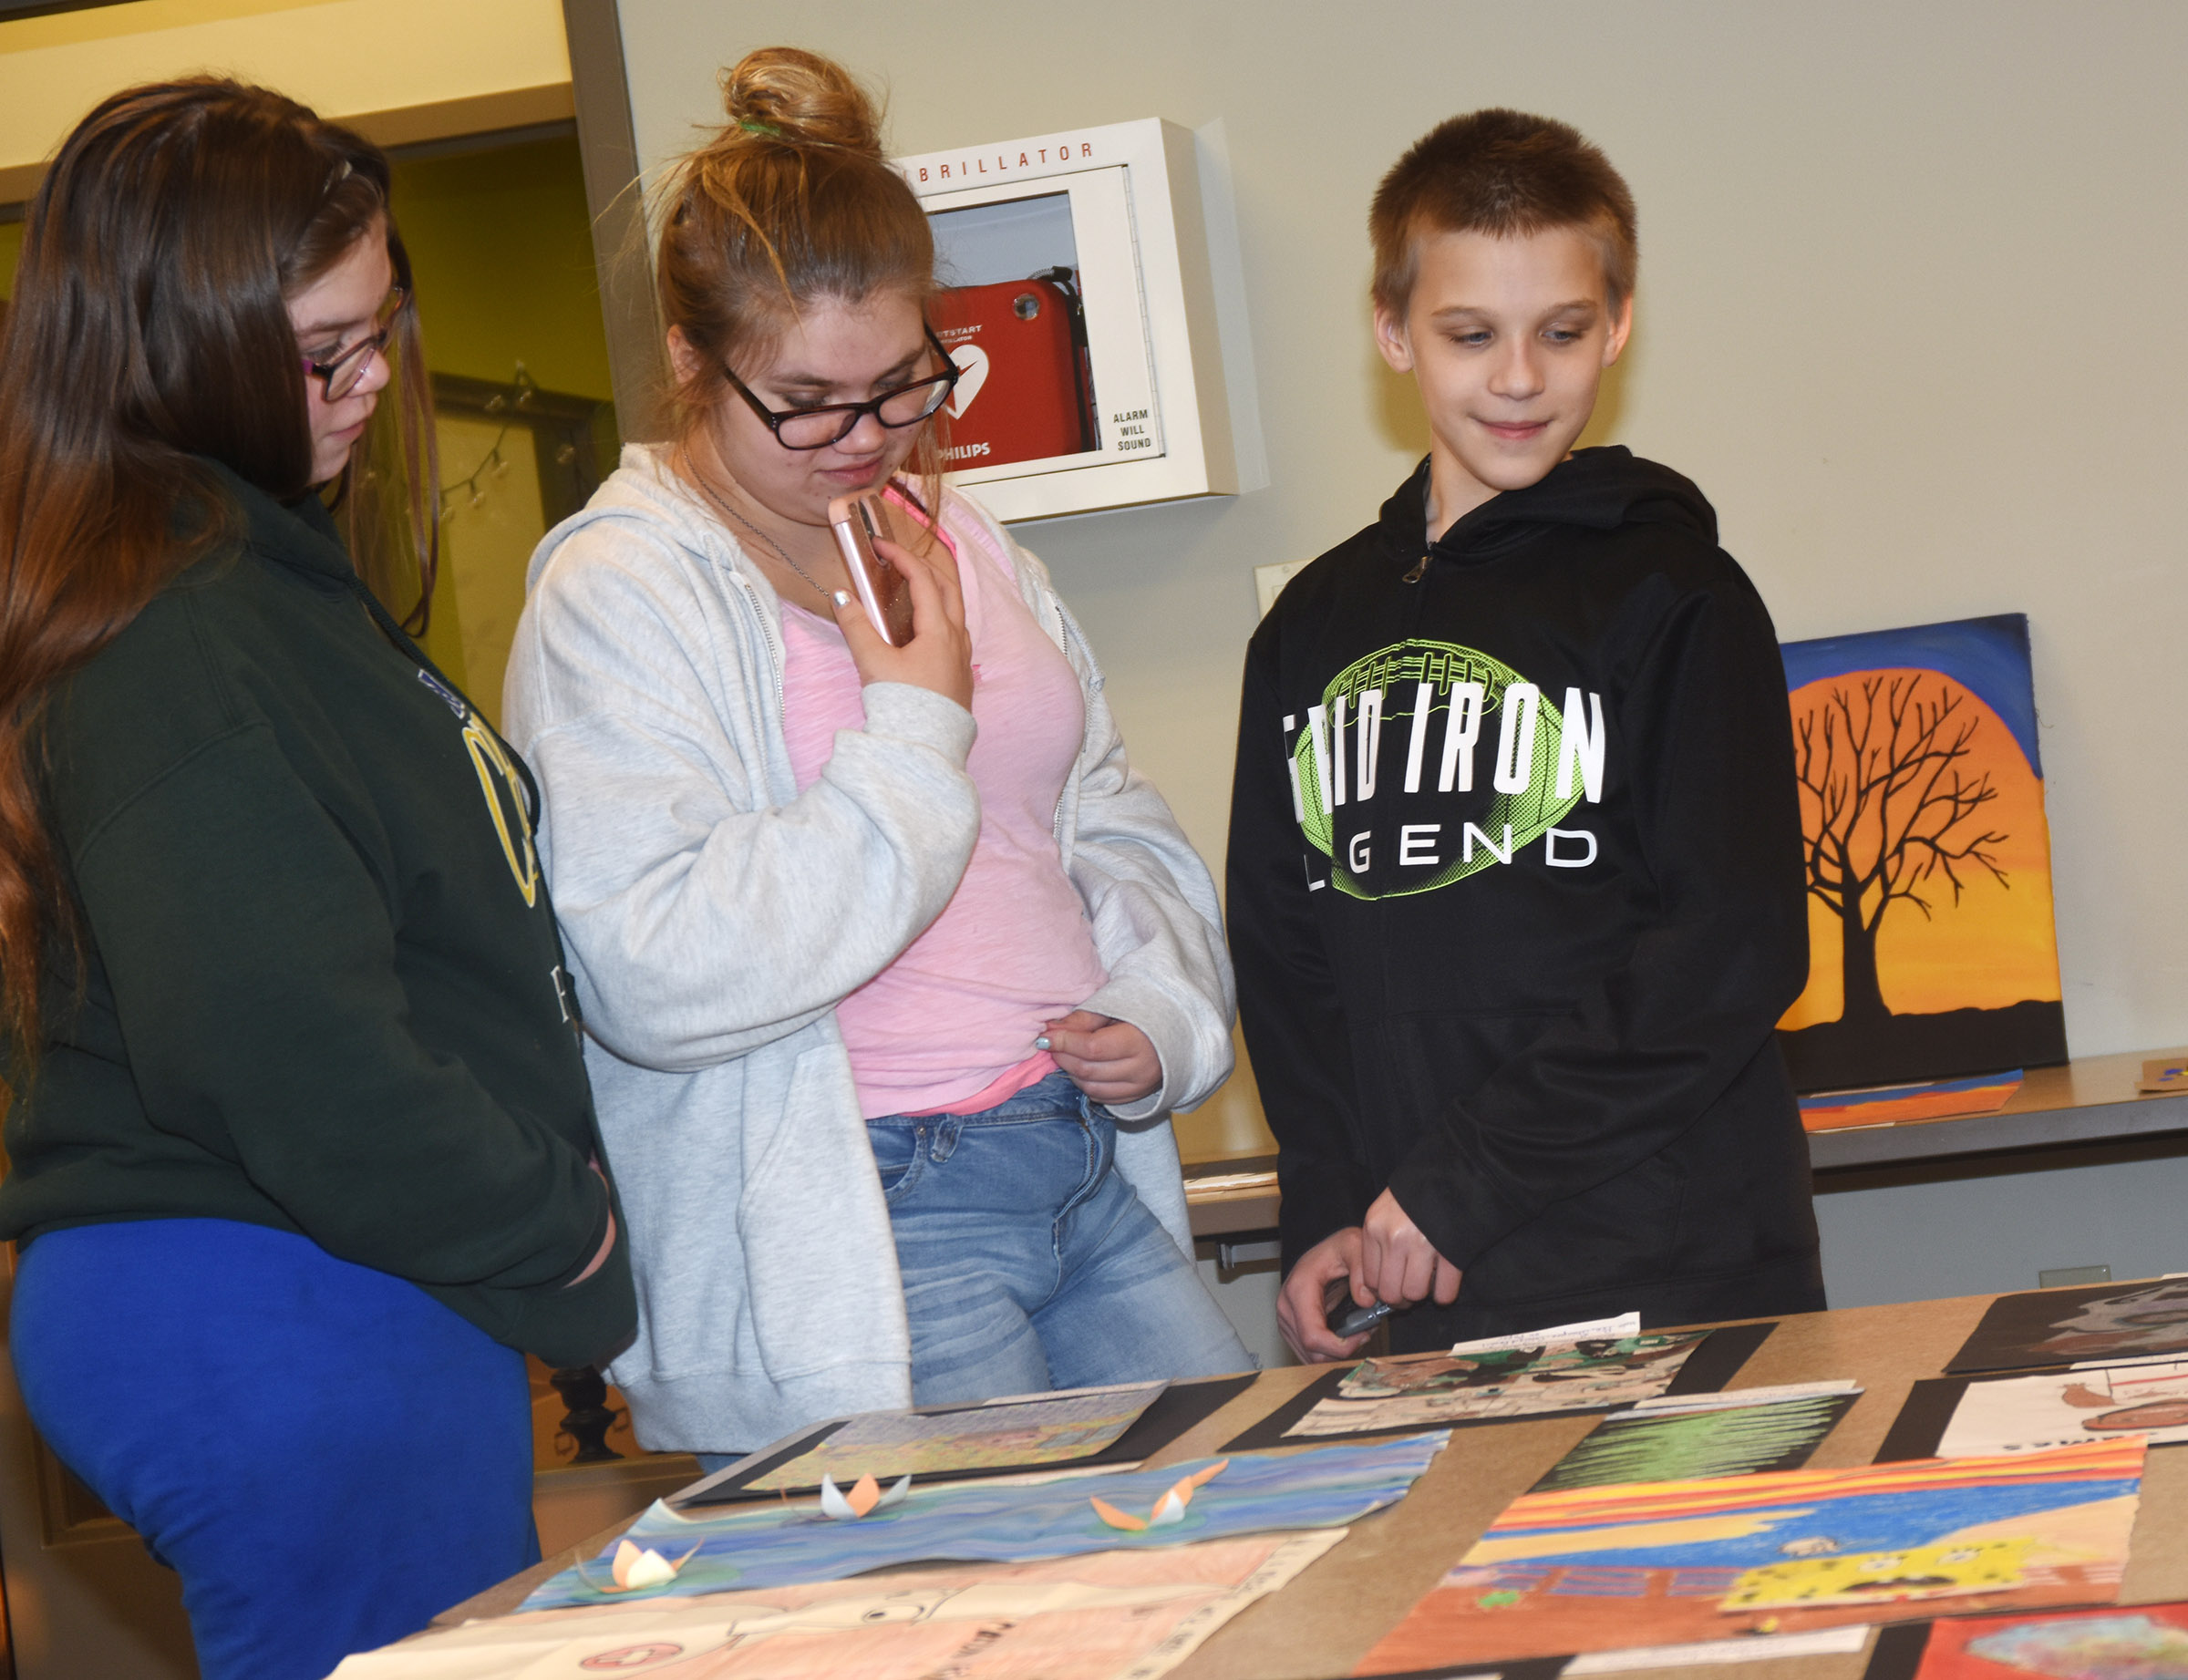 CHS junior Mackenzie Quackenbush, center, looks at her artwork with her sister Zoe, a freshman, and brother Kody, a sixth-grader.